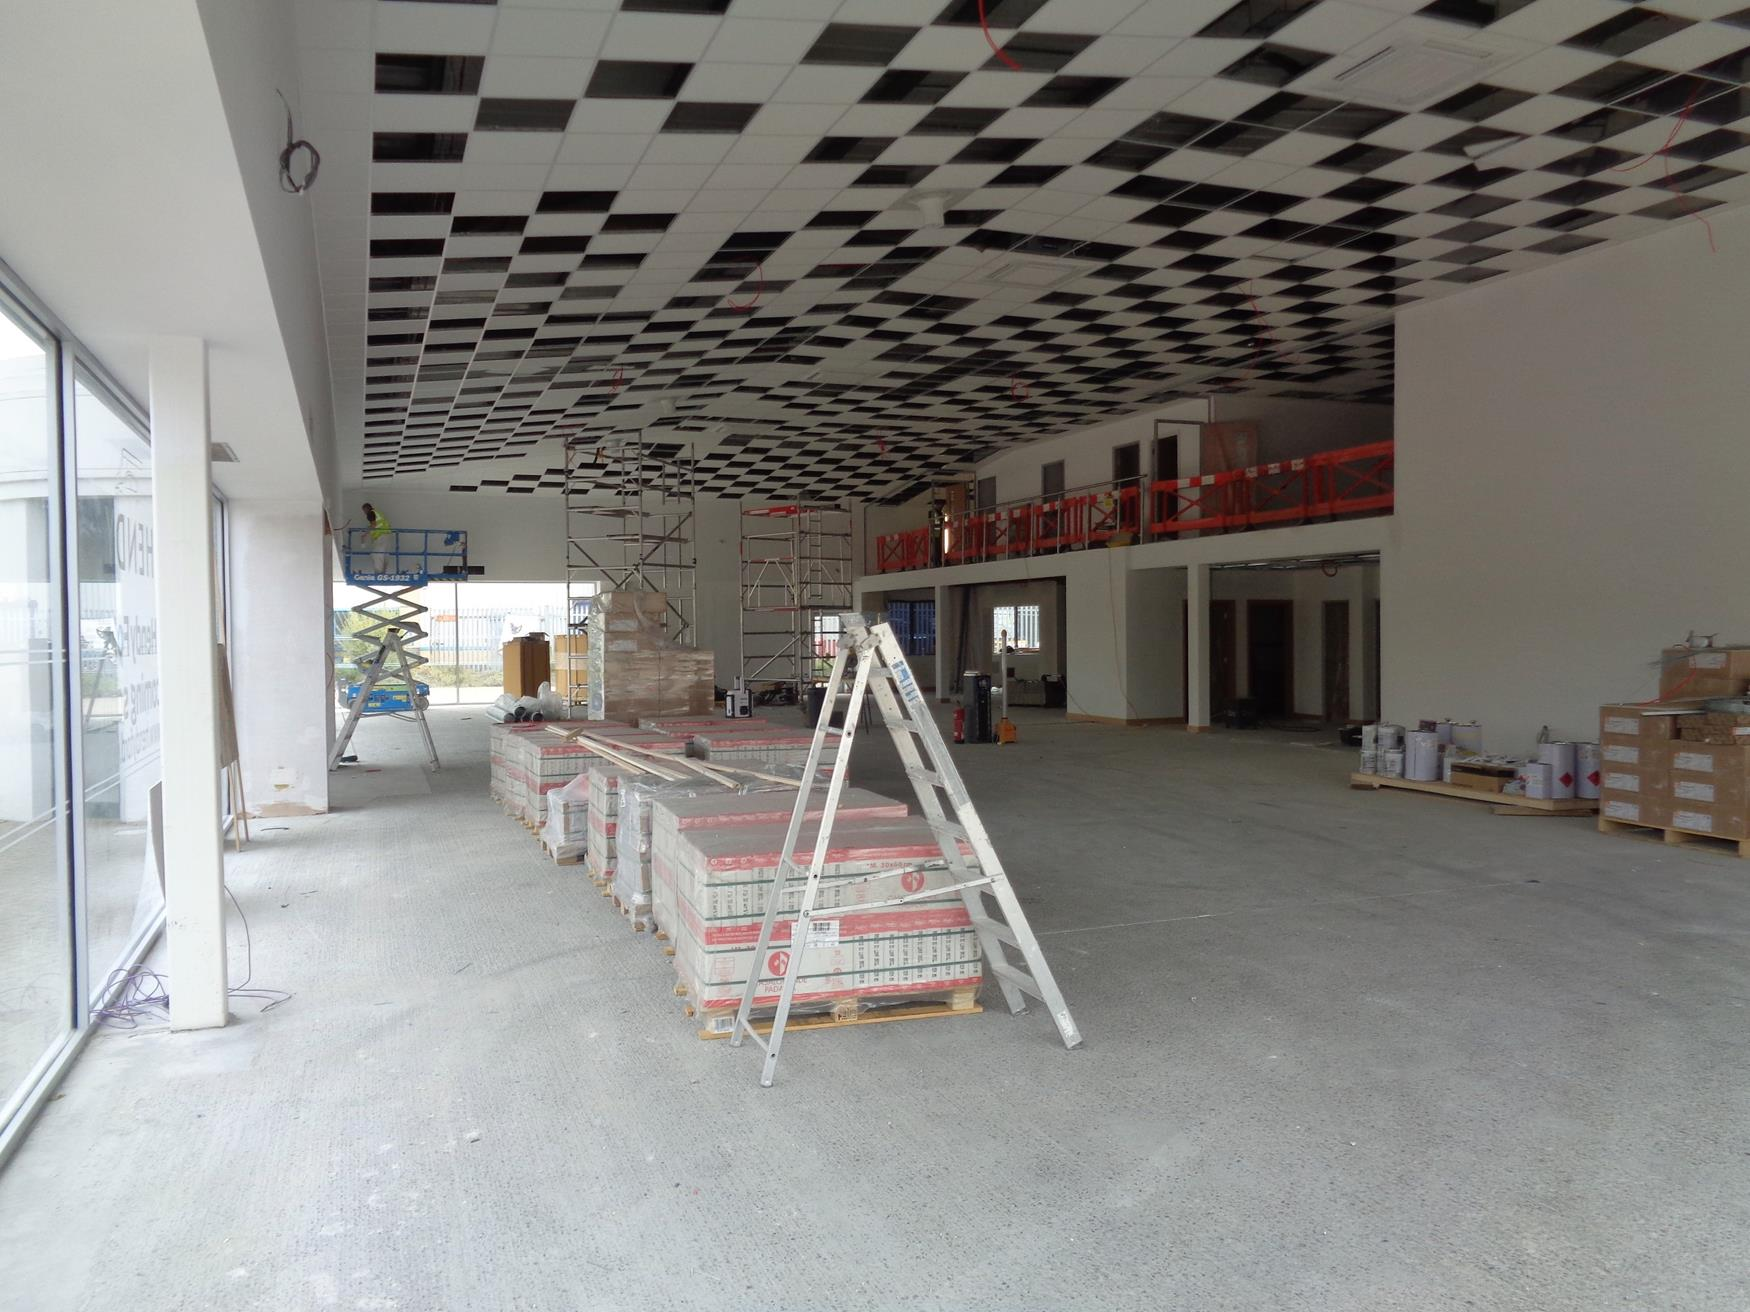 Ceiling raised to maximise space in showroom